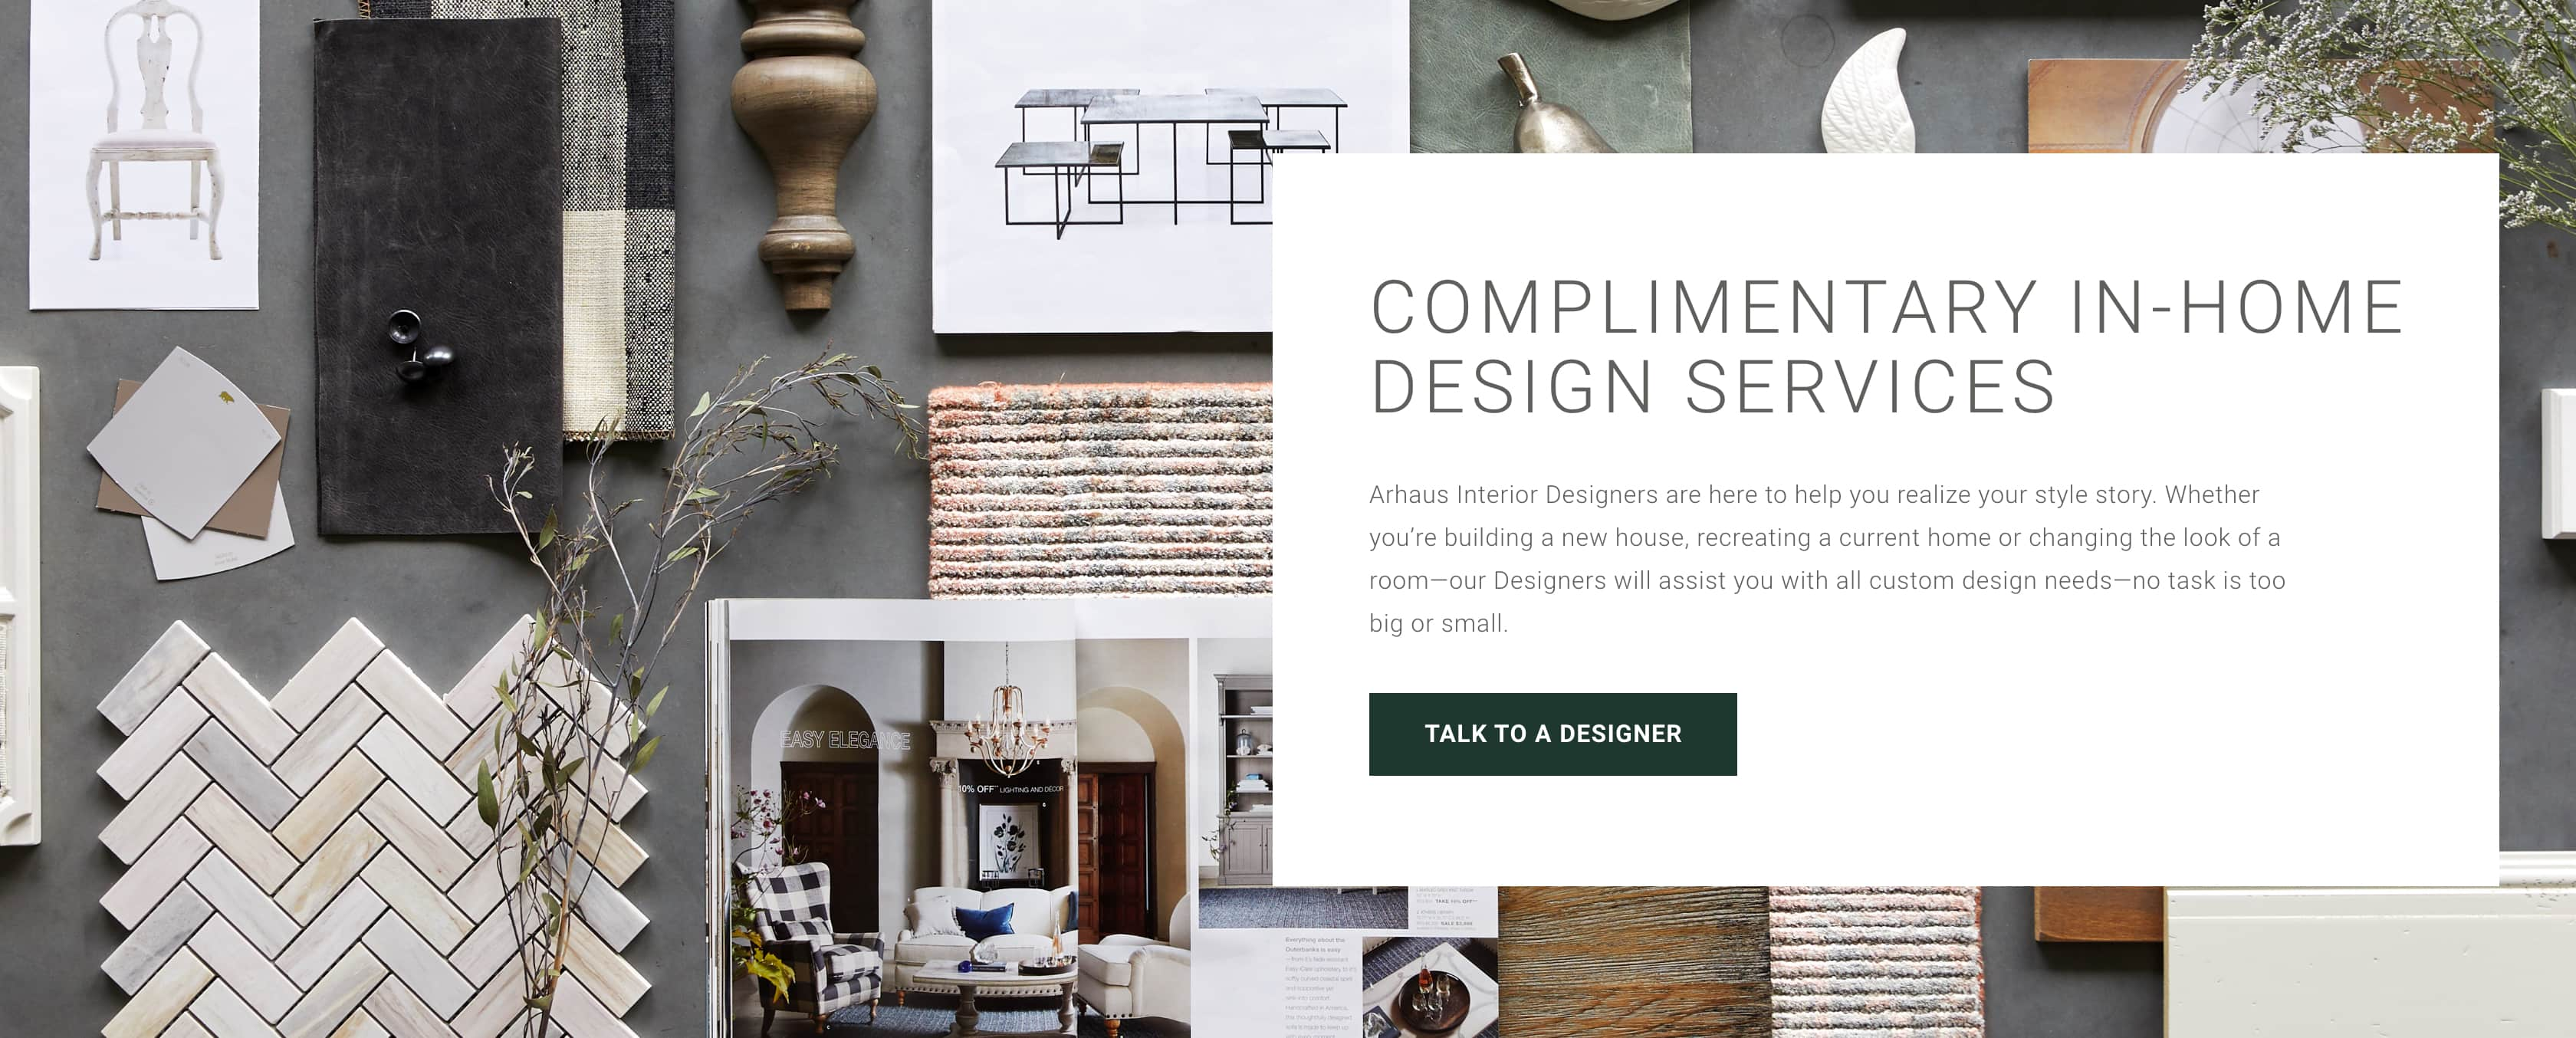 Arhaus Complimentary In-Home Design Services